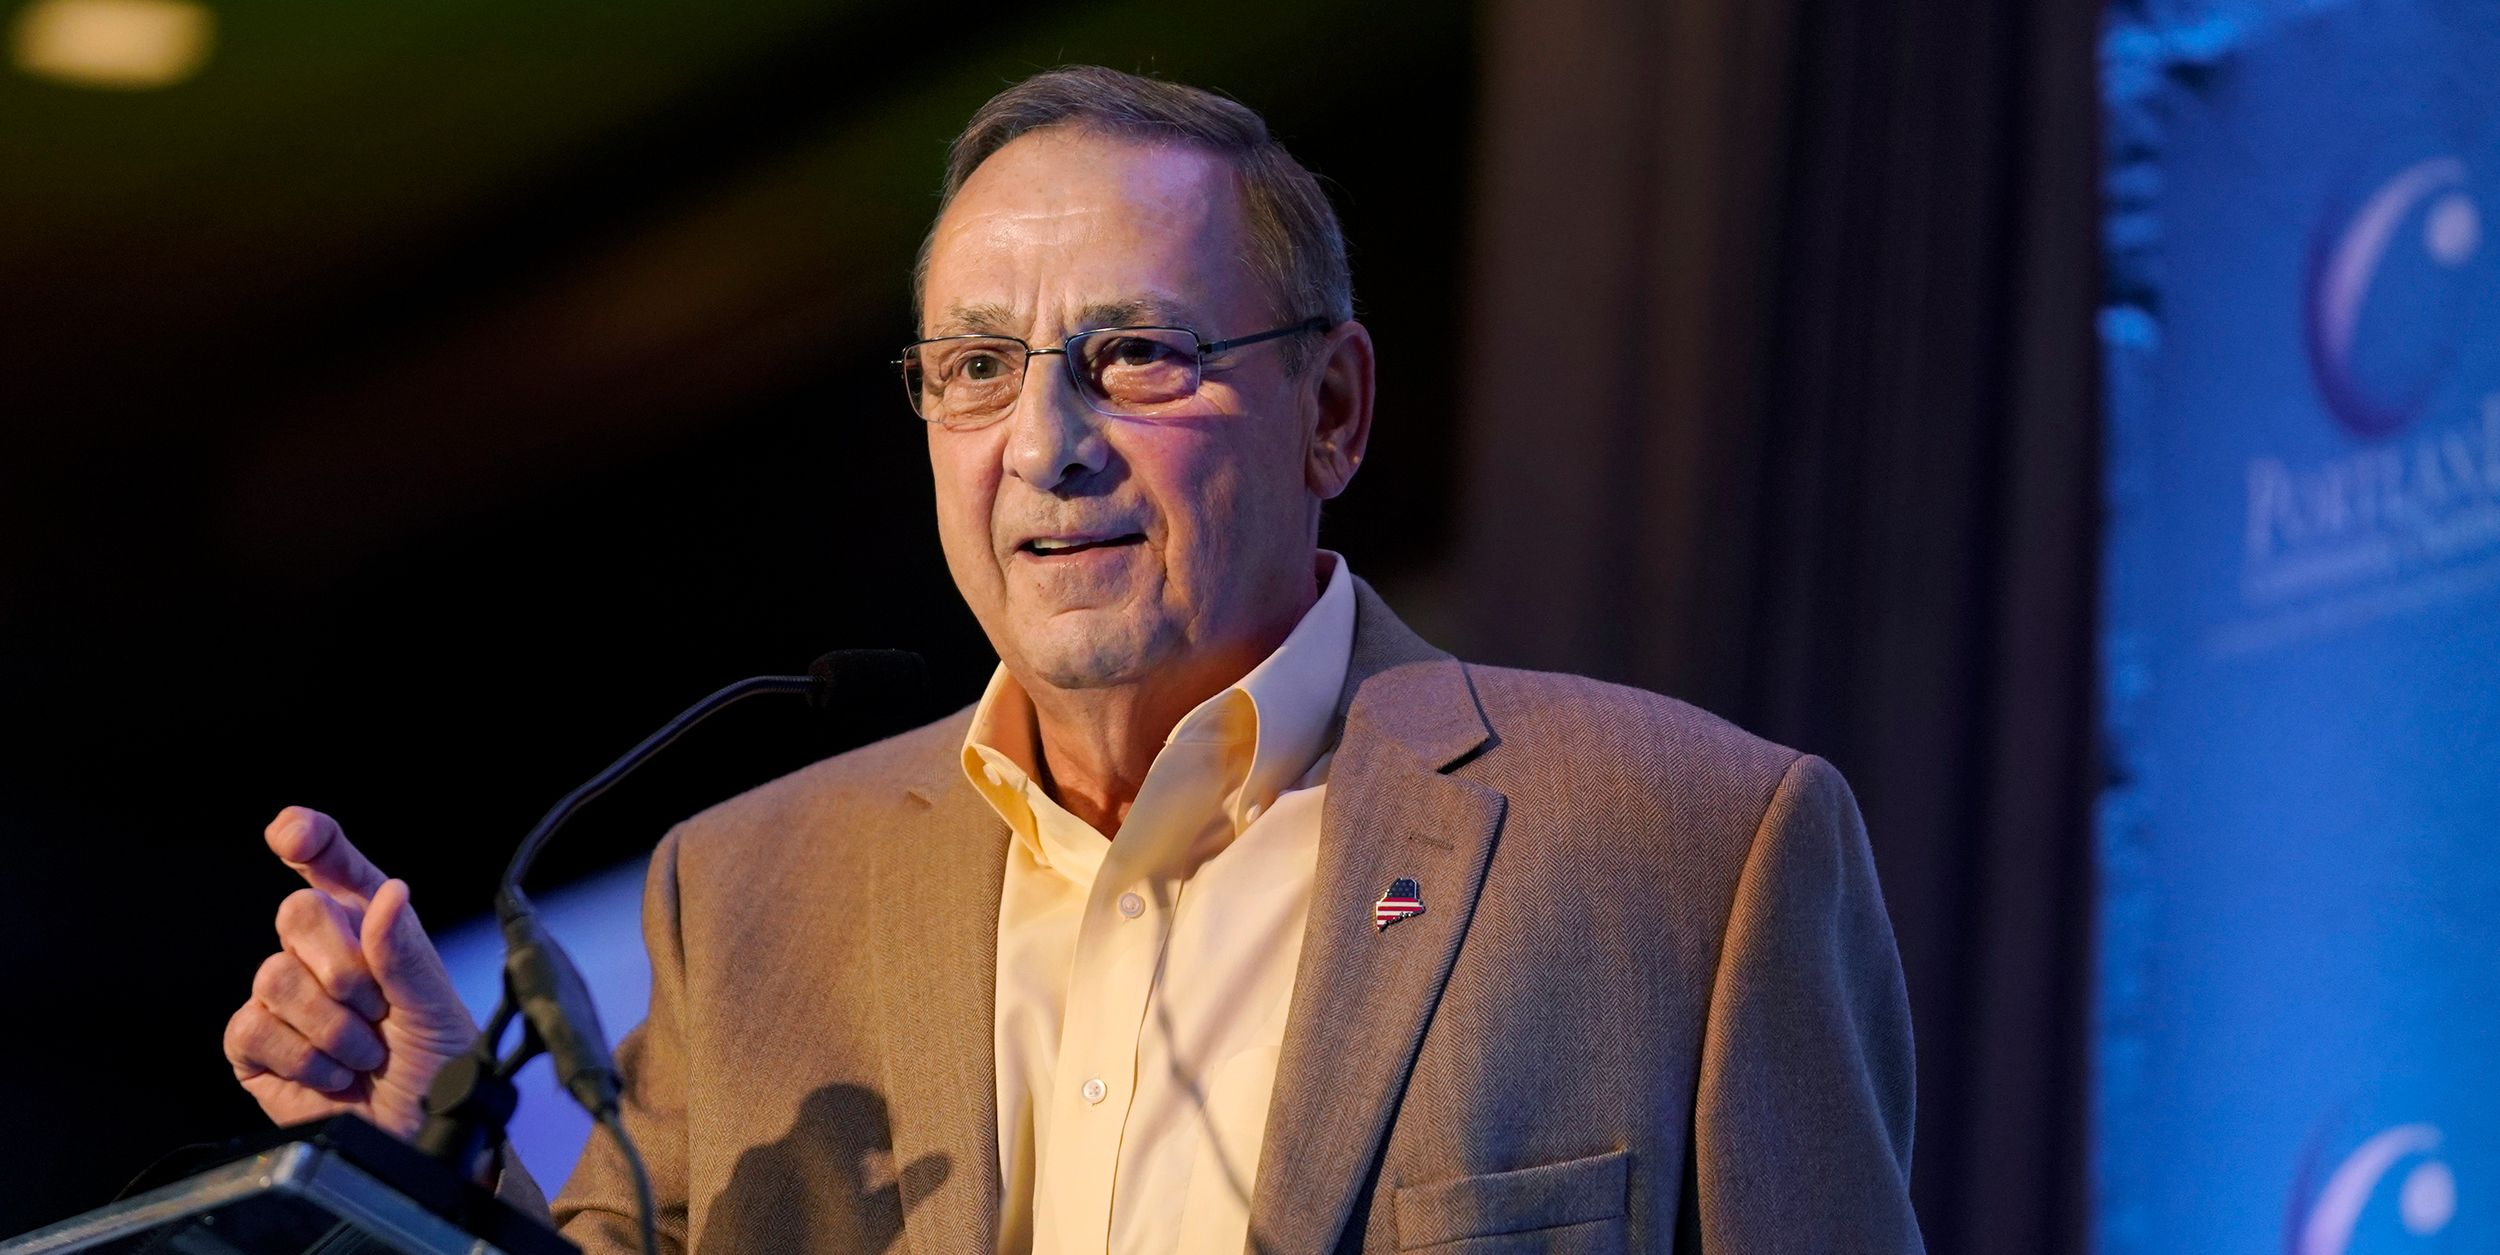 """Former Maine Governor Paul LePage suggests scrapping the Electoral College is a way to strip white people of their """"say."""""""